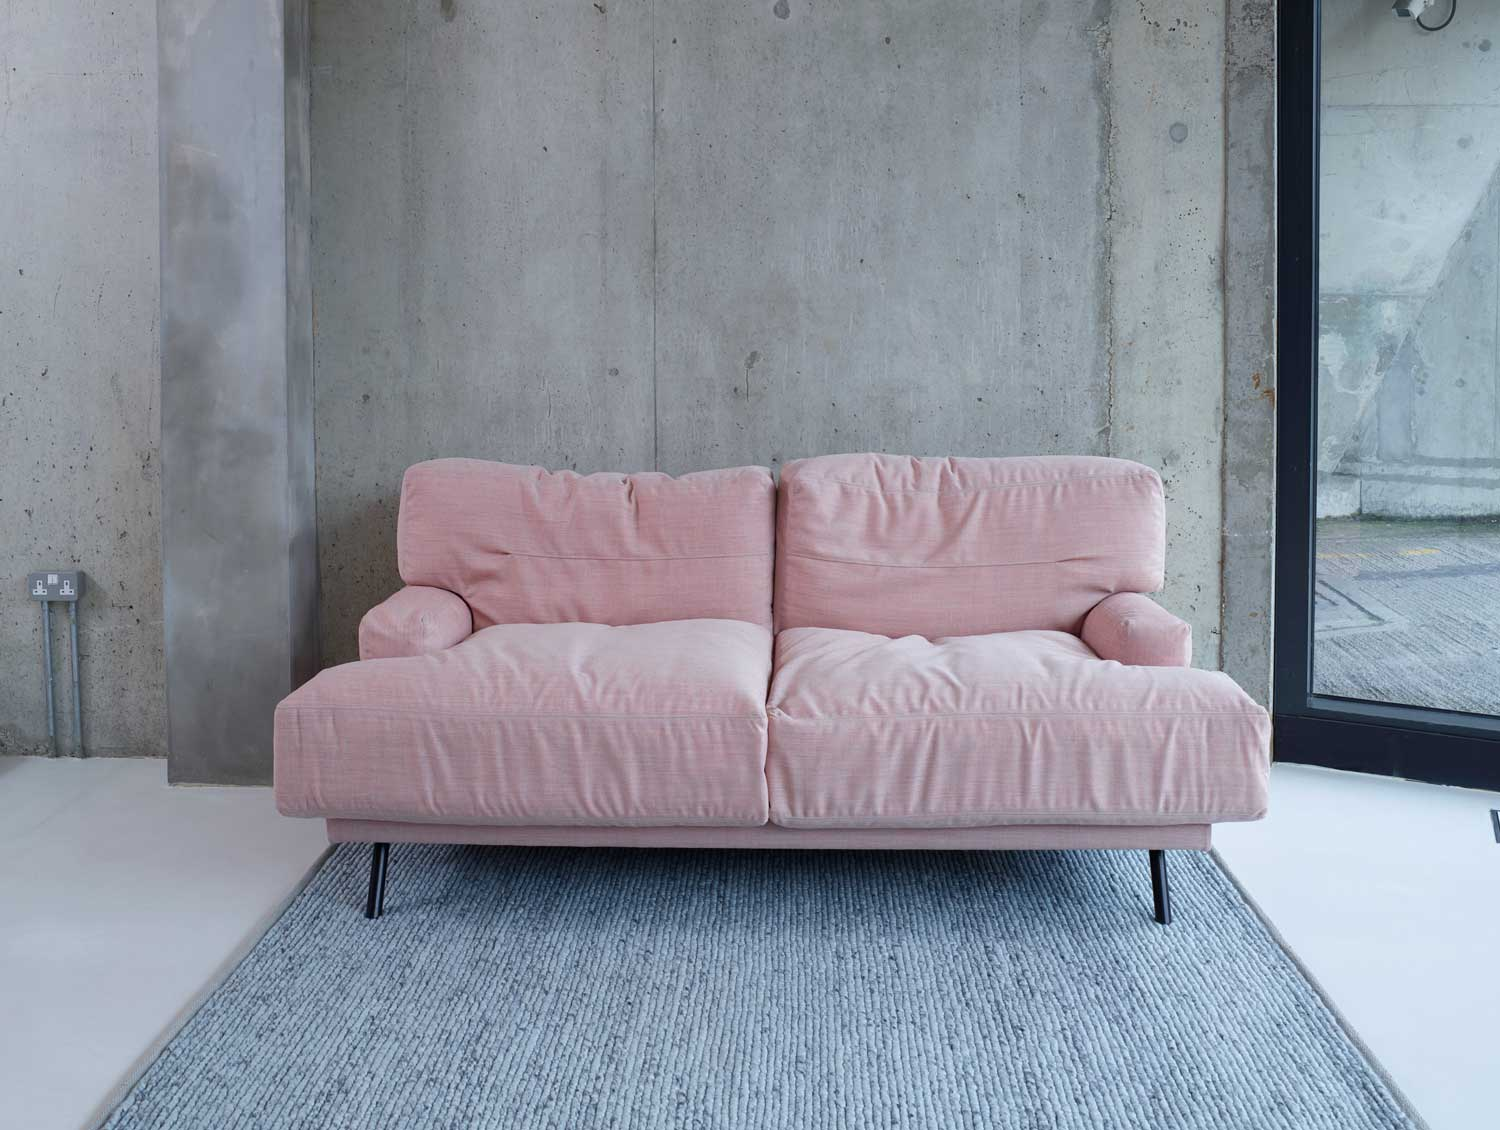 Elmer Two Seat Sofa by Lucy Kurrein for SCP | Yellowtrace